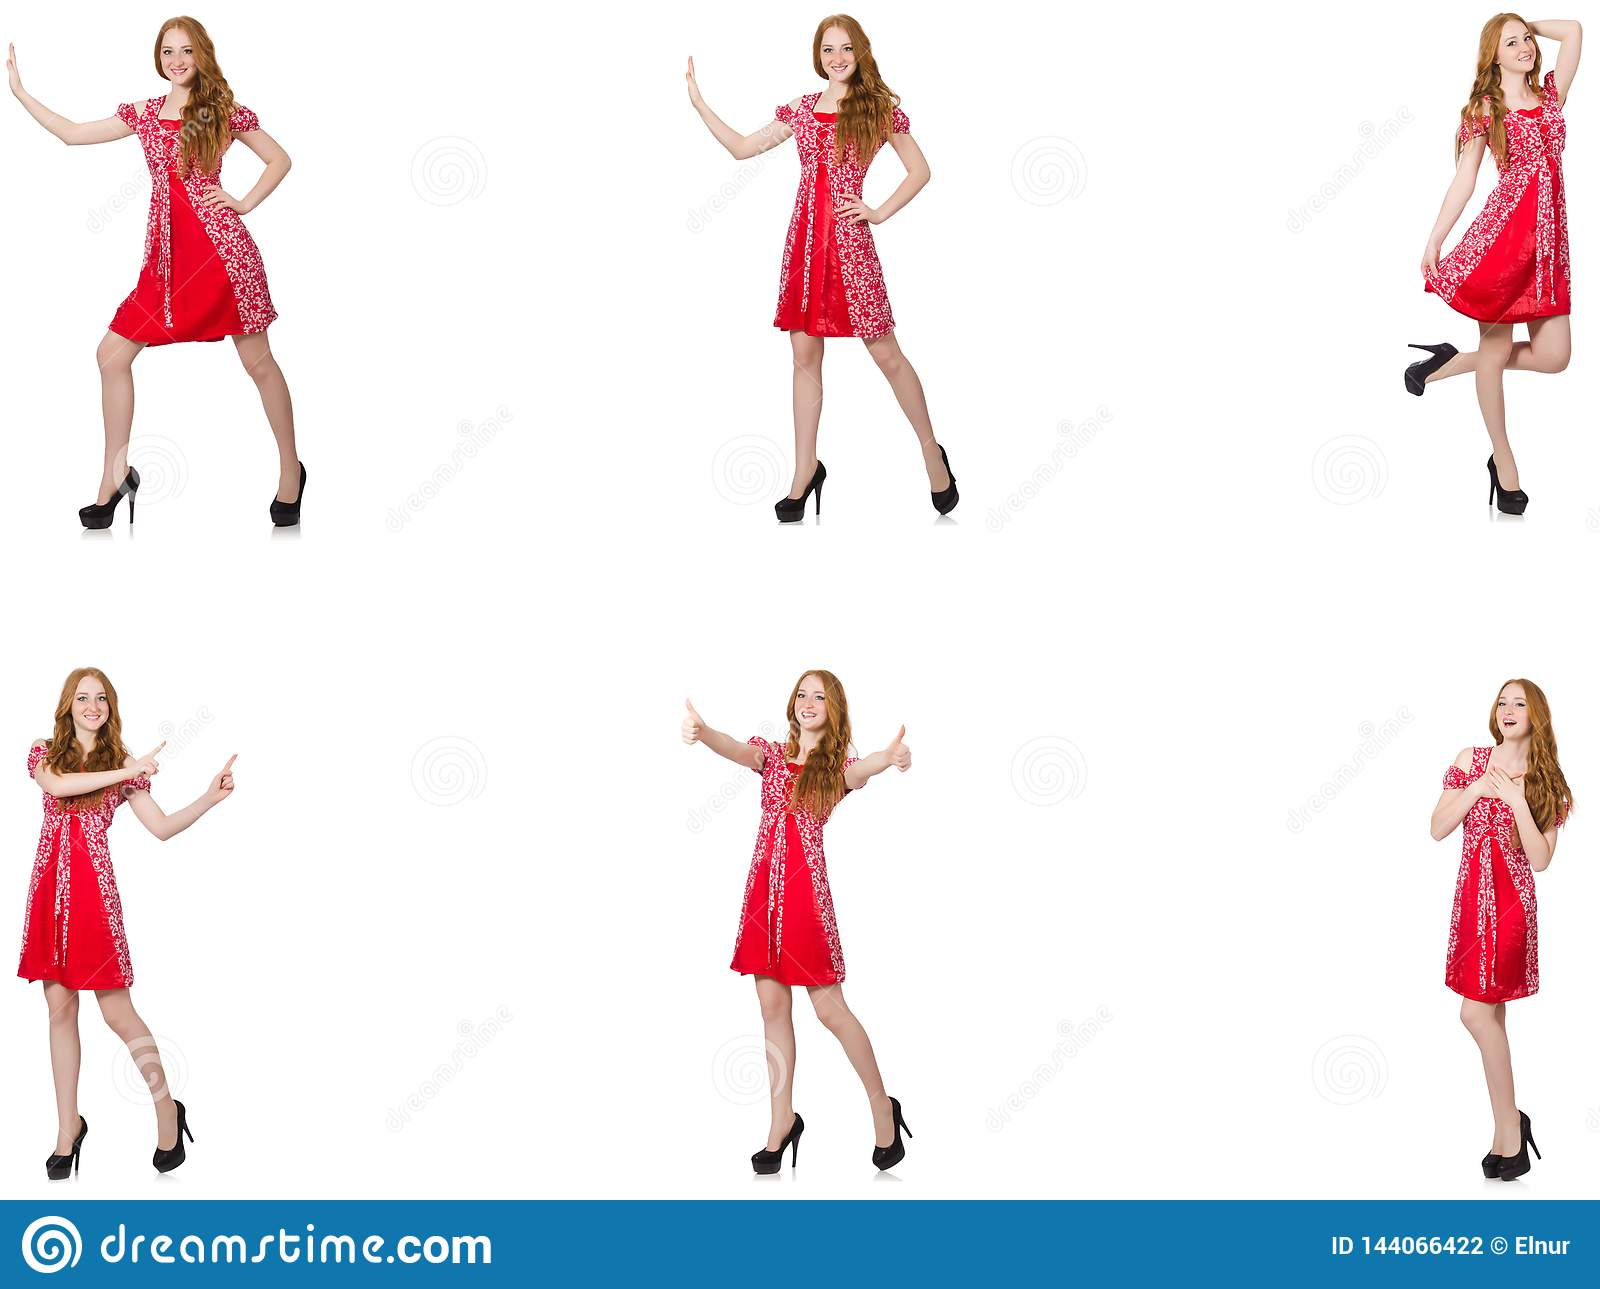 The redhead woman in red dress